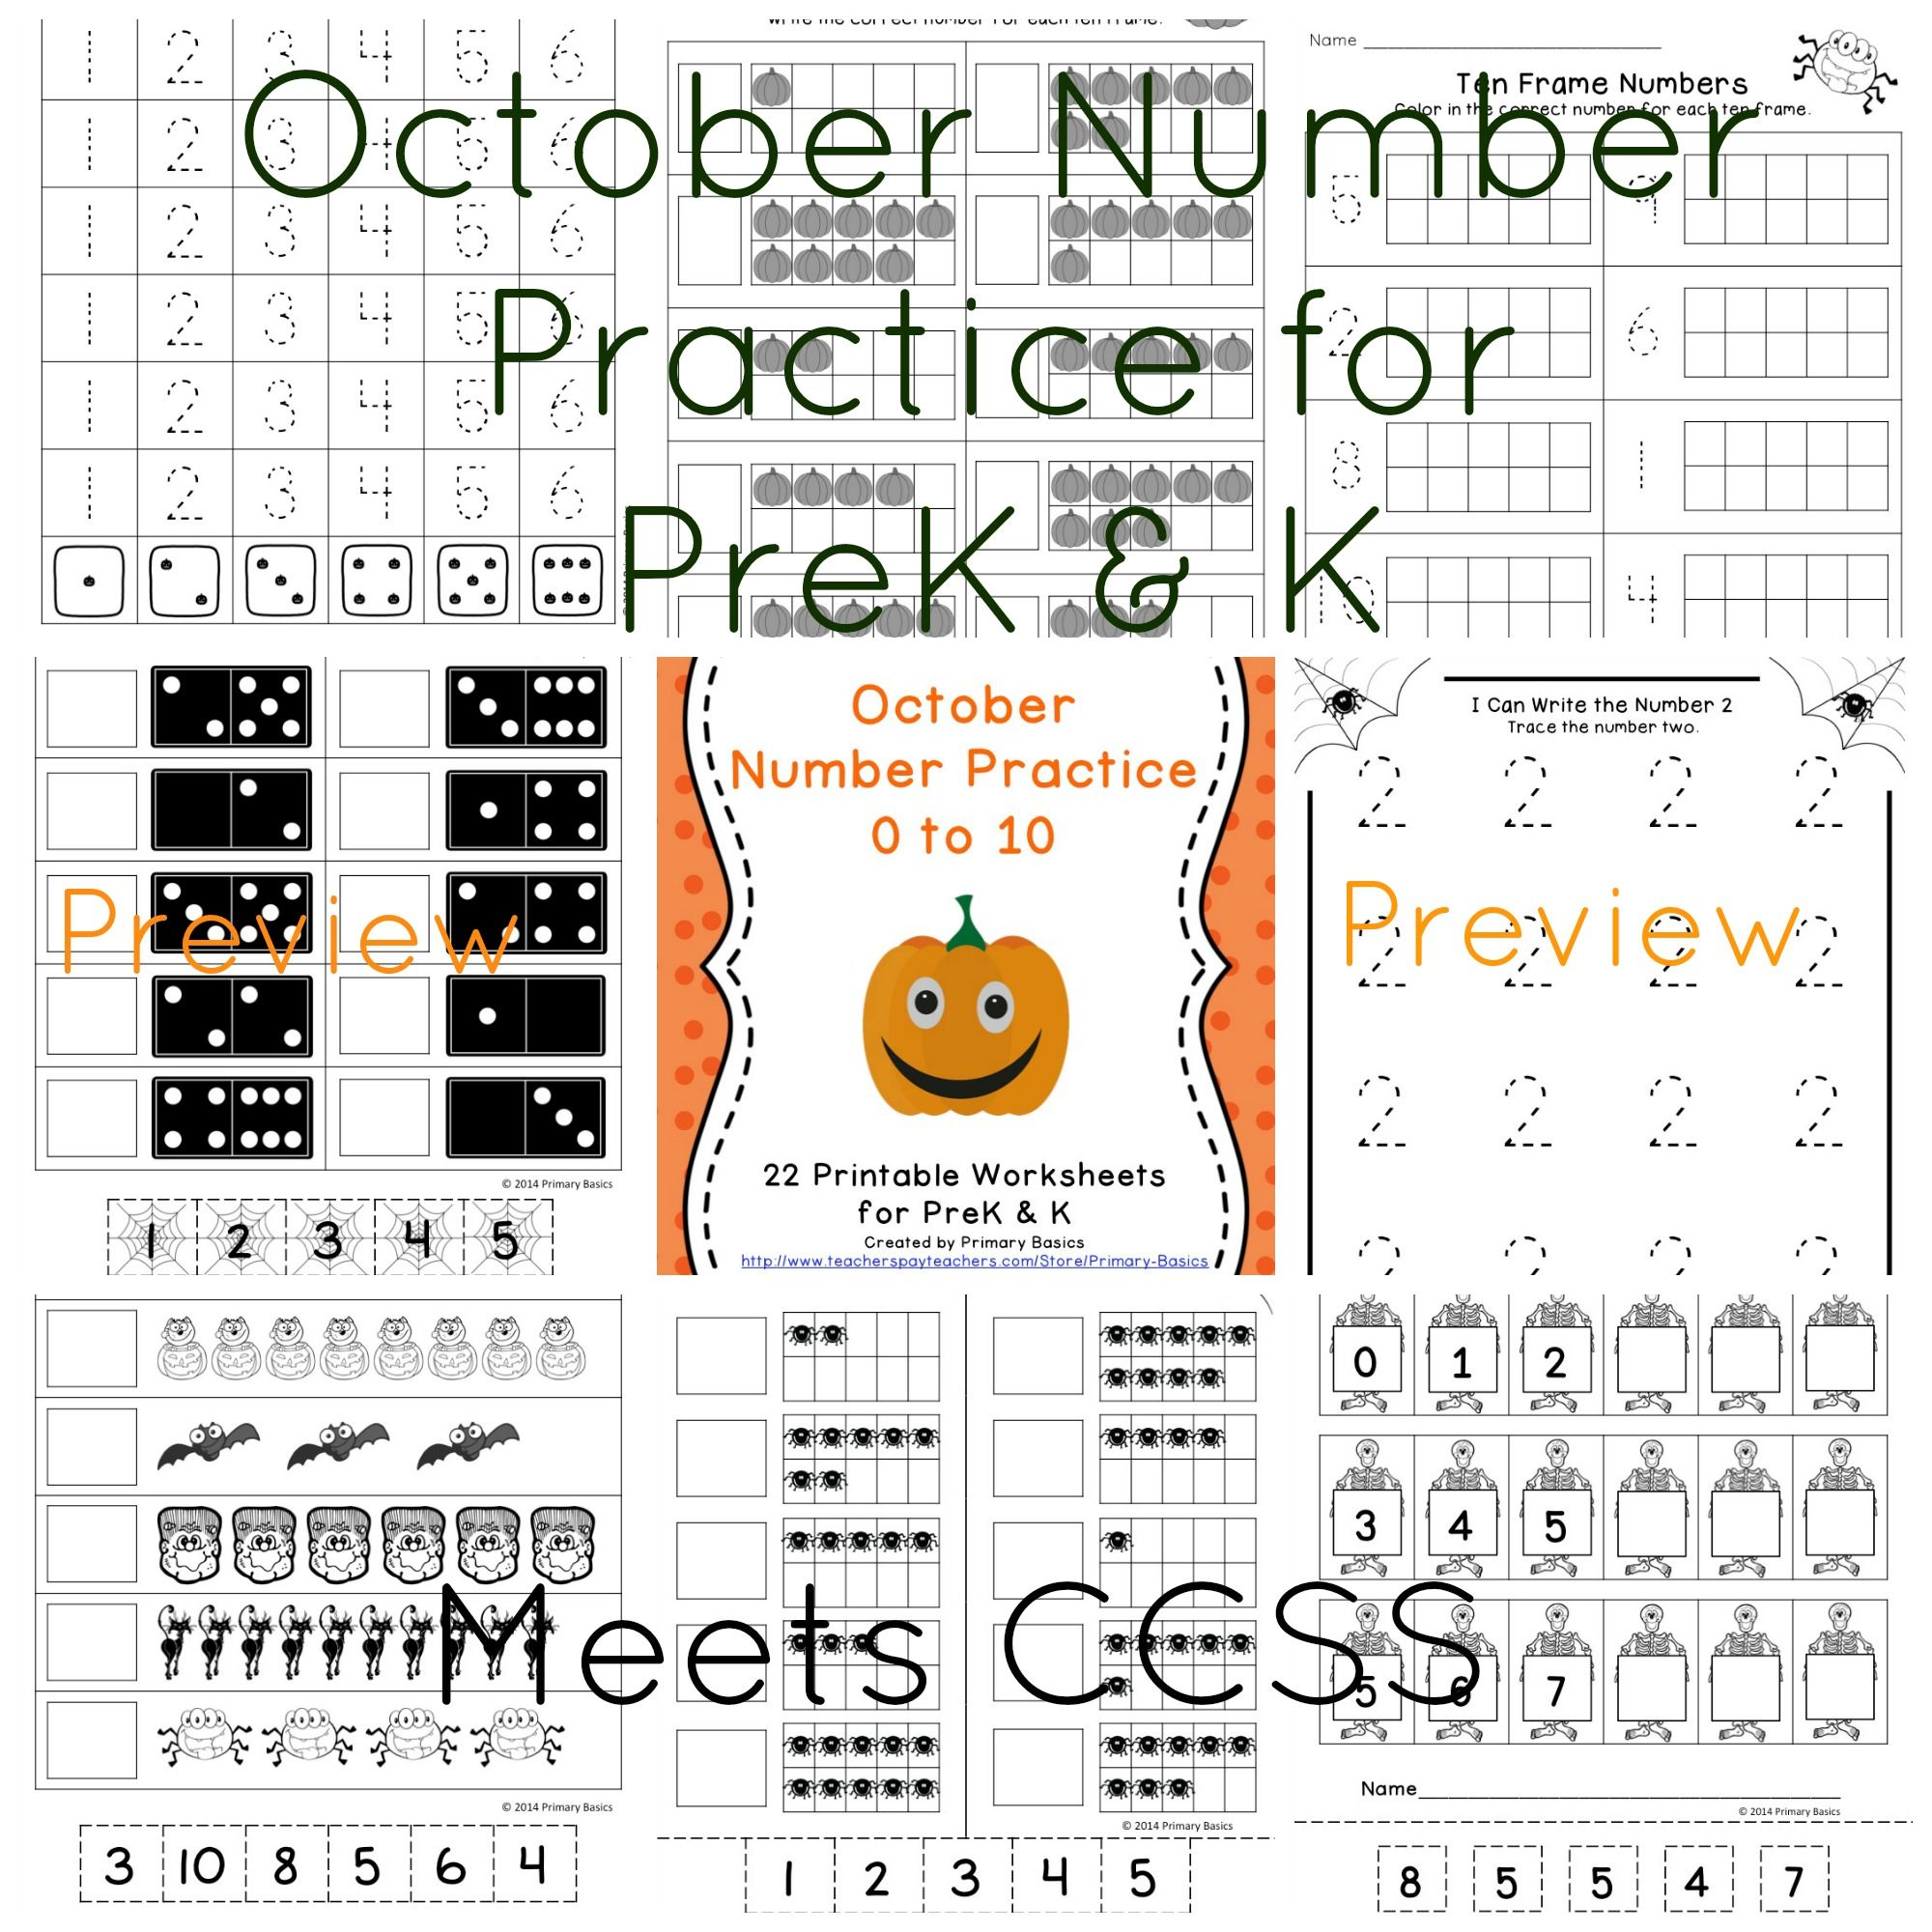 October Number Practice 0 To 10 With Images